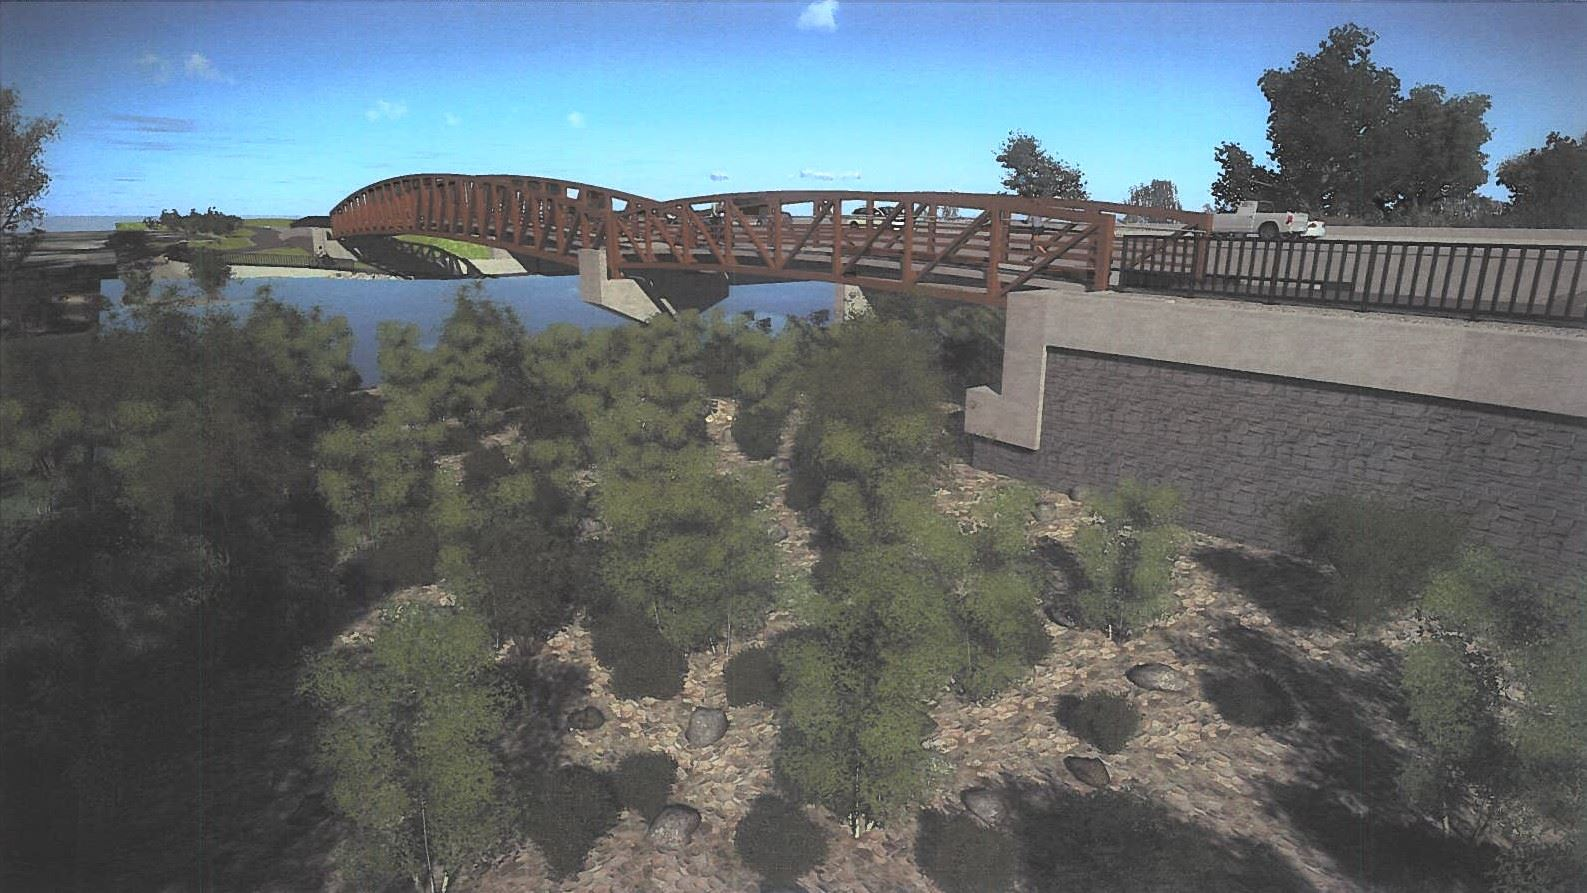 Concept art of the Eagle Road Pedestrian/Bike Bridge over the Boise River